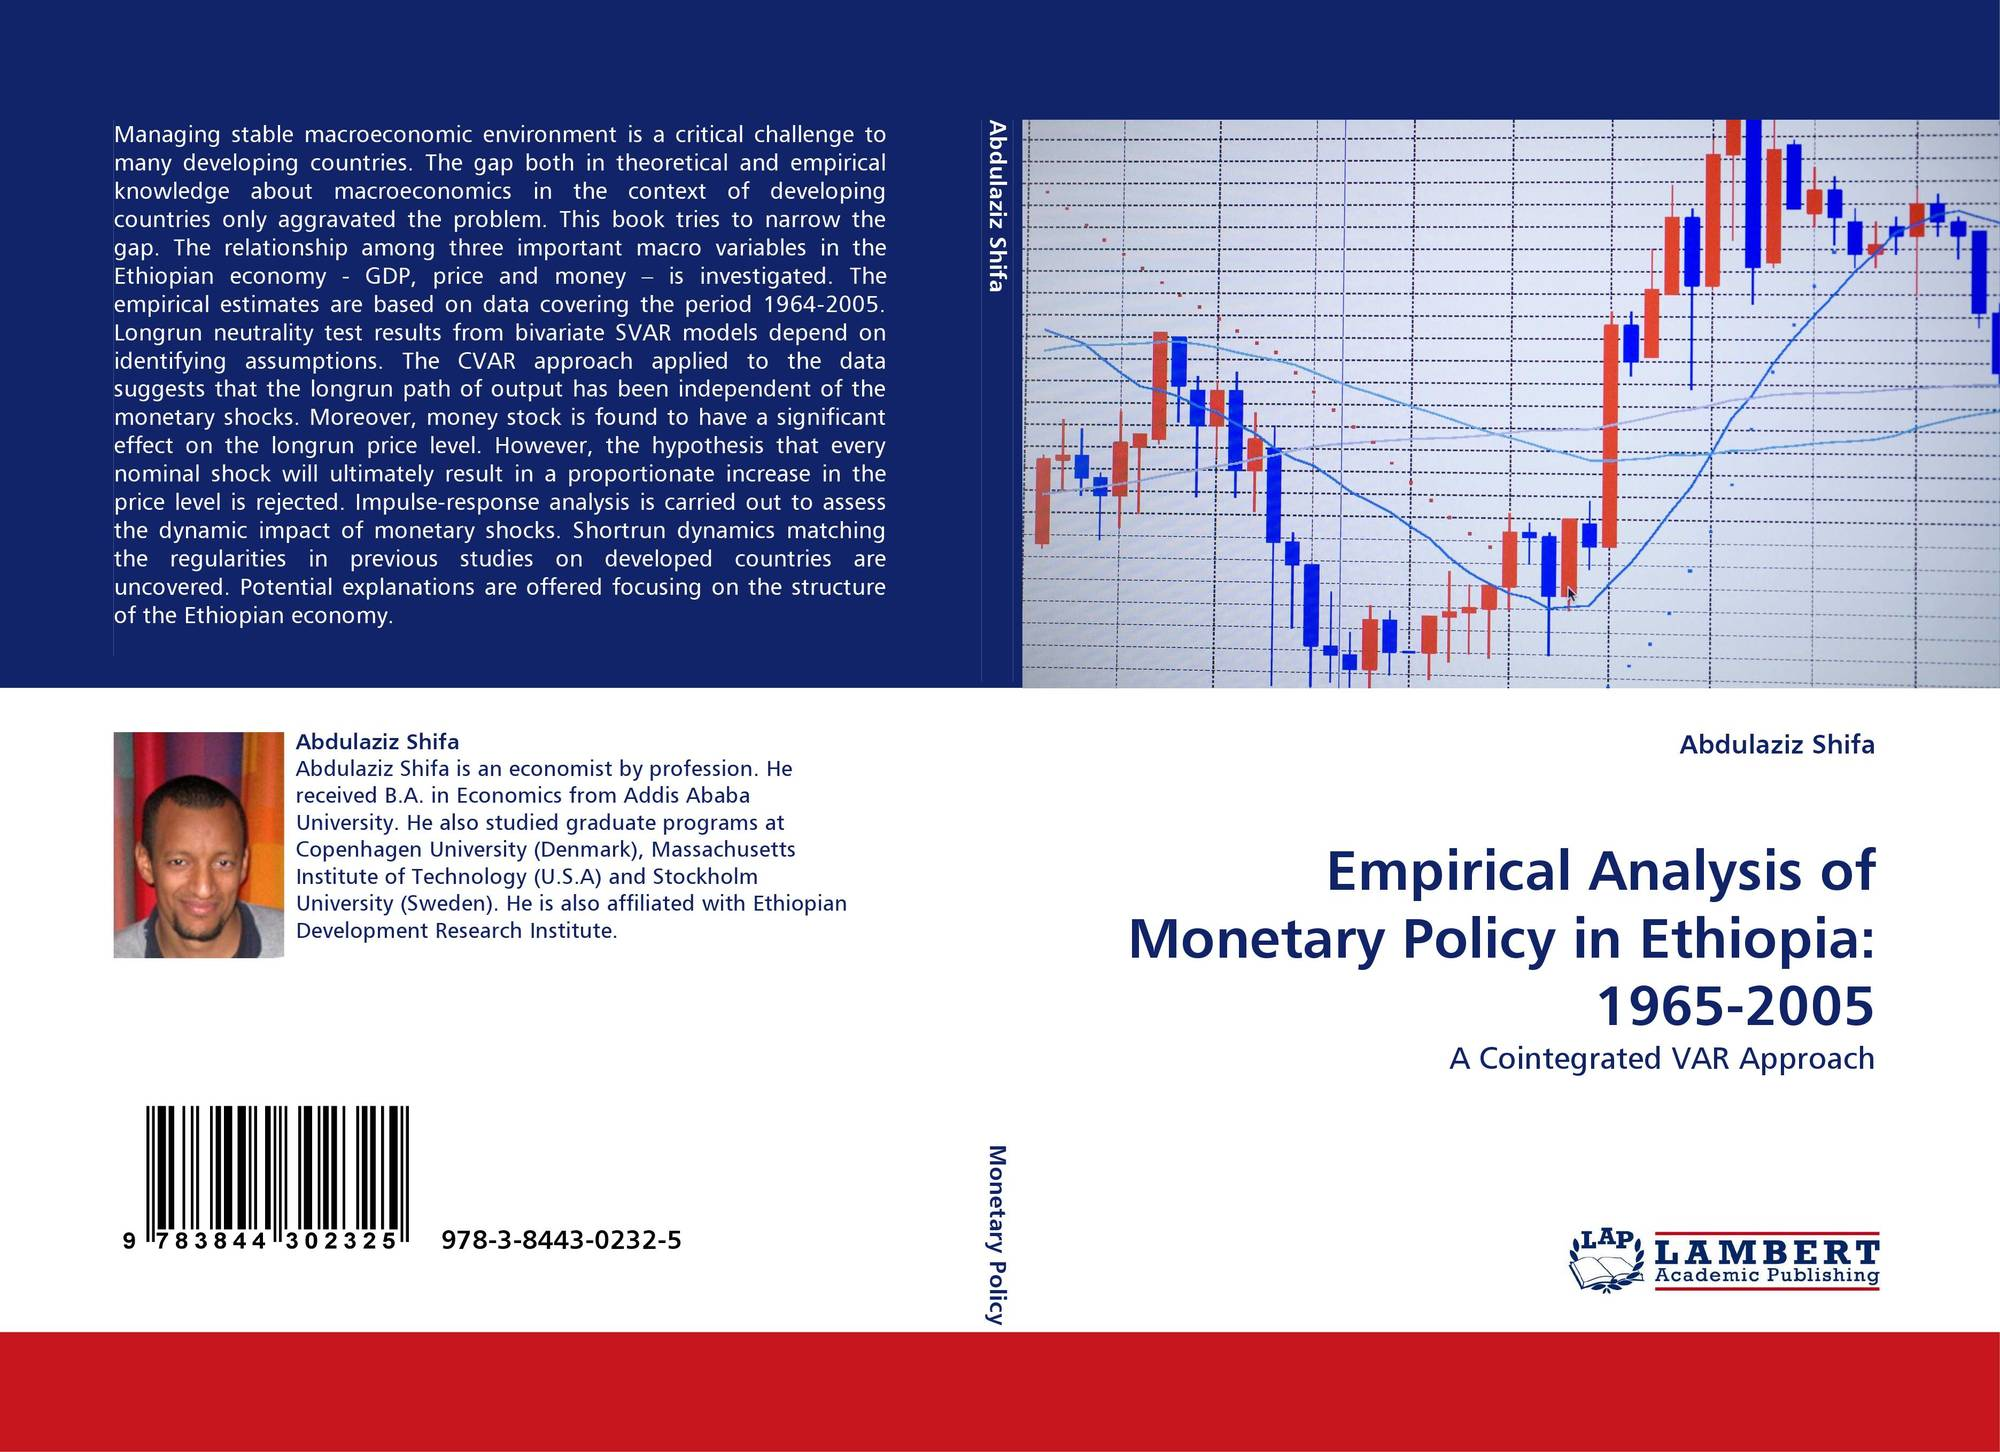 Empirical essays in macroeconomics and finance